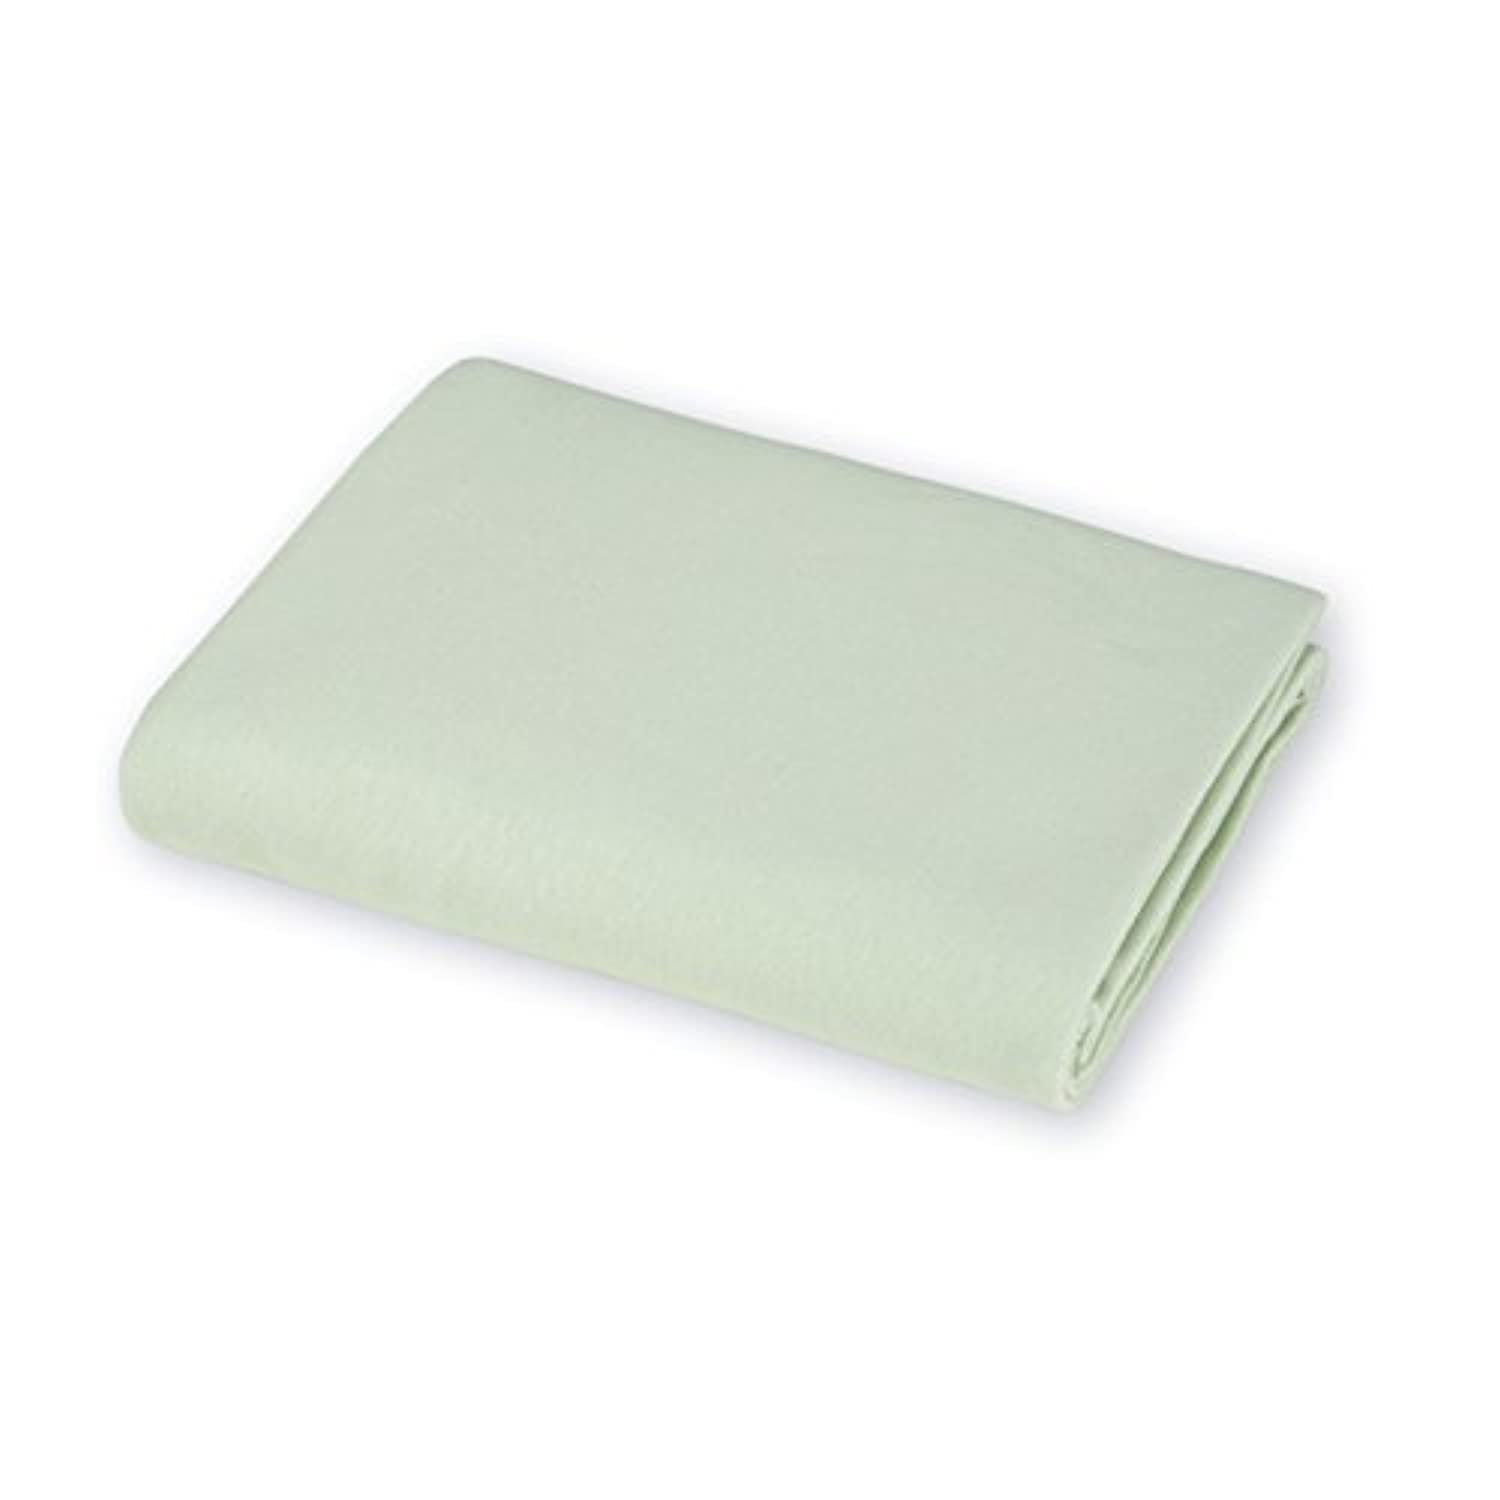 Crib & Toddler Poly/Cotton Sheets - Color: Mint - Flat by Baby Doll